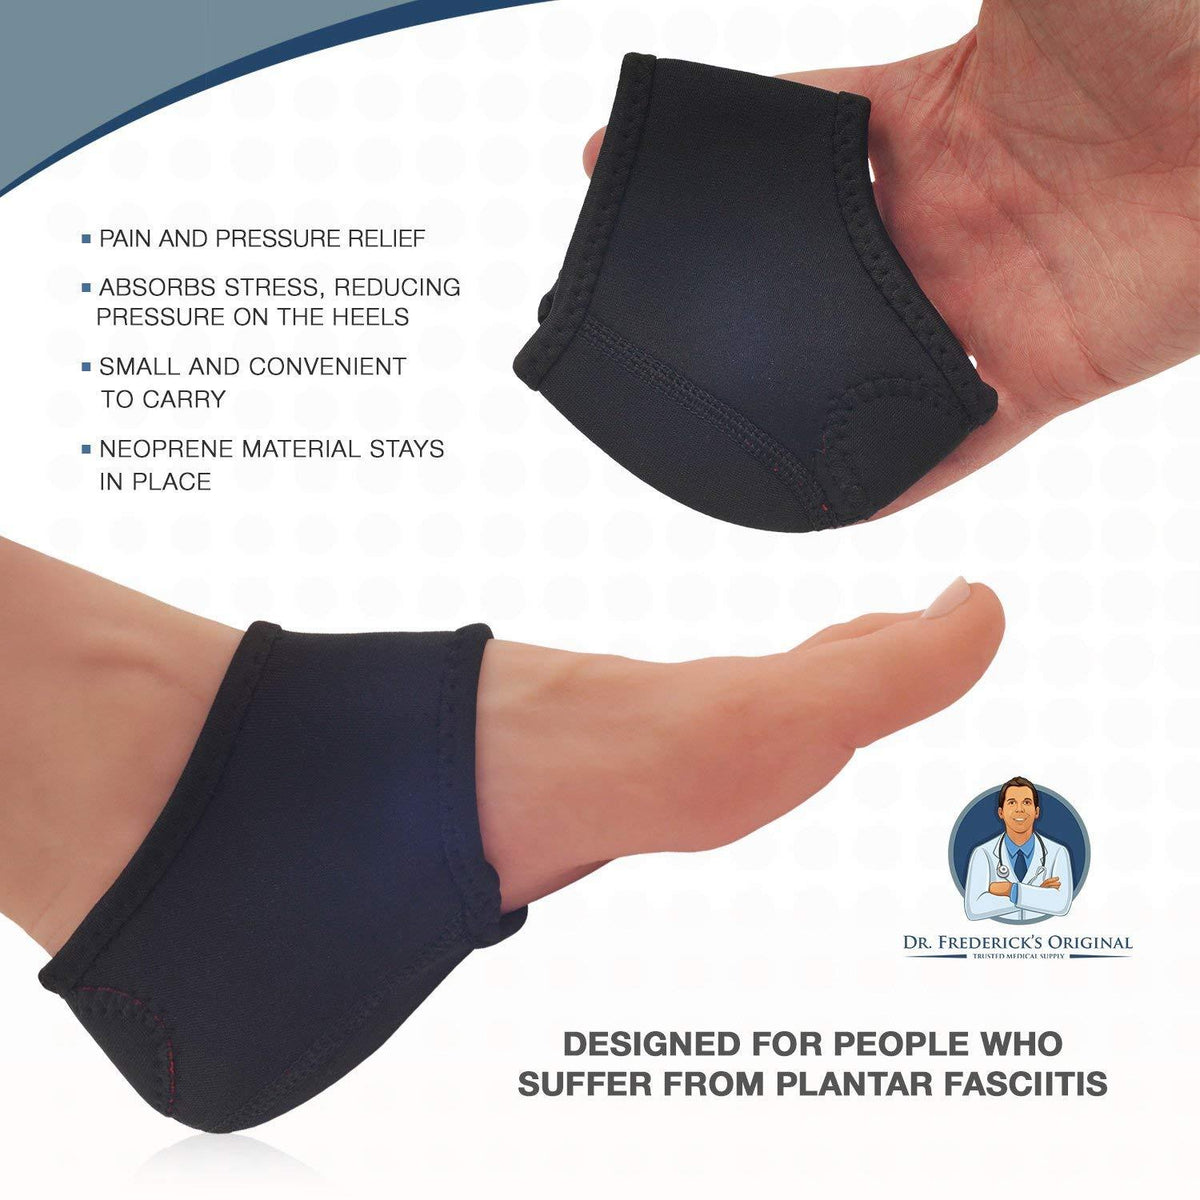 Dr. Frederick's Original Neoprene Heel Guard Set -- 2 Pieces - for Heel Pain, Plantar Fasciitis, Heel Spurs, and Cracked Heels Foot Pain Dr. Frederick's Original